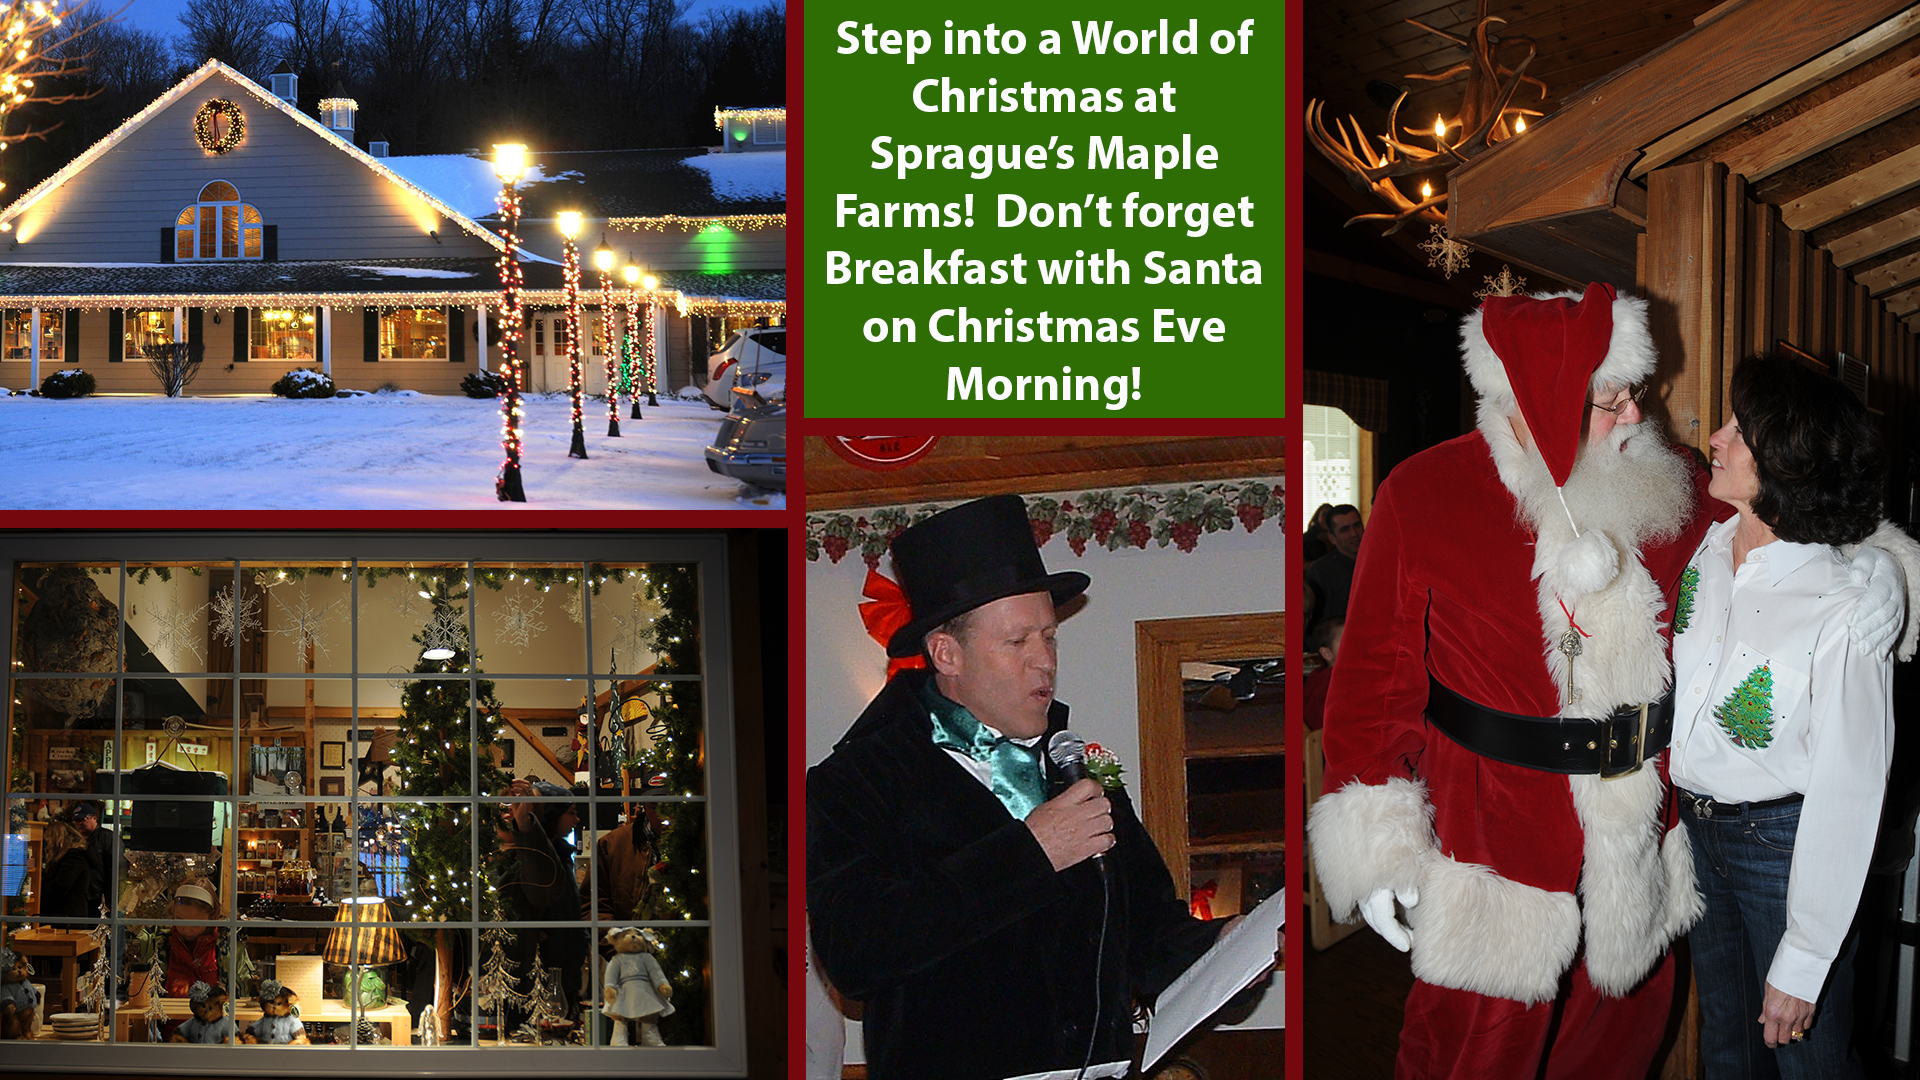 Christmastime at Sprague's Maple Farms